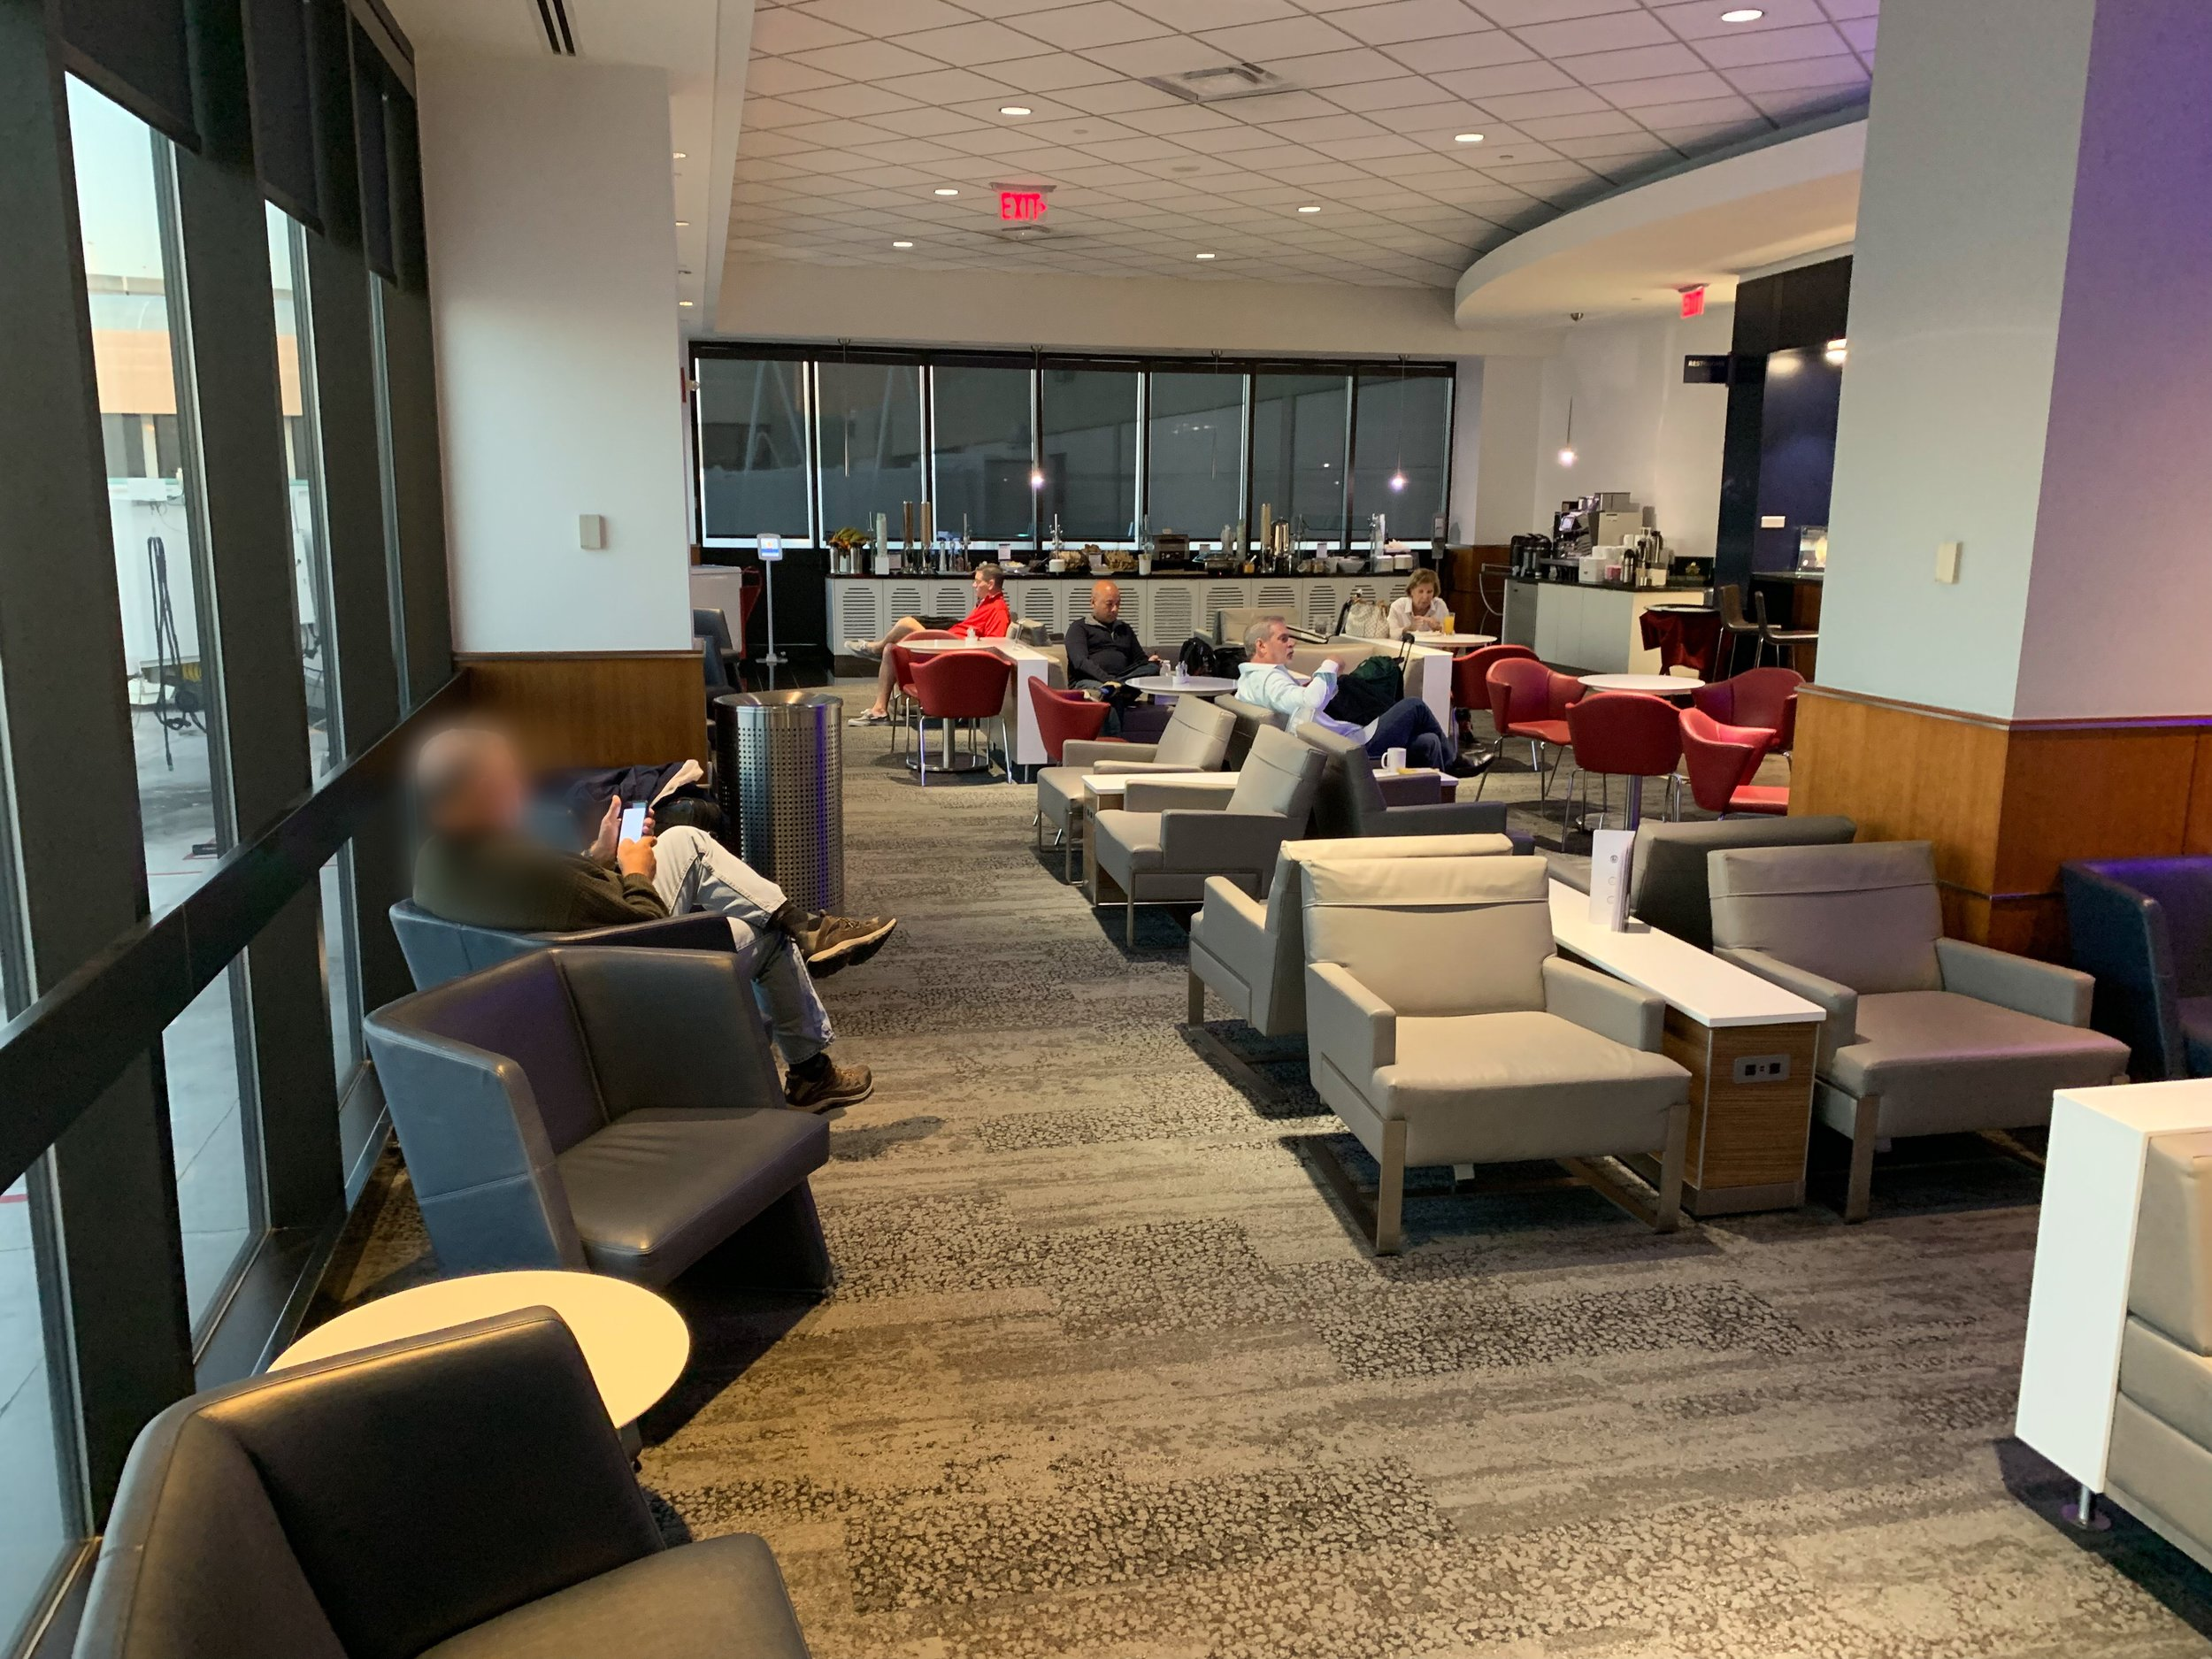 WEST PALM BEACH - Concourse C, Across From Gate C4